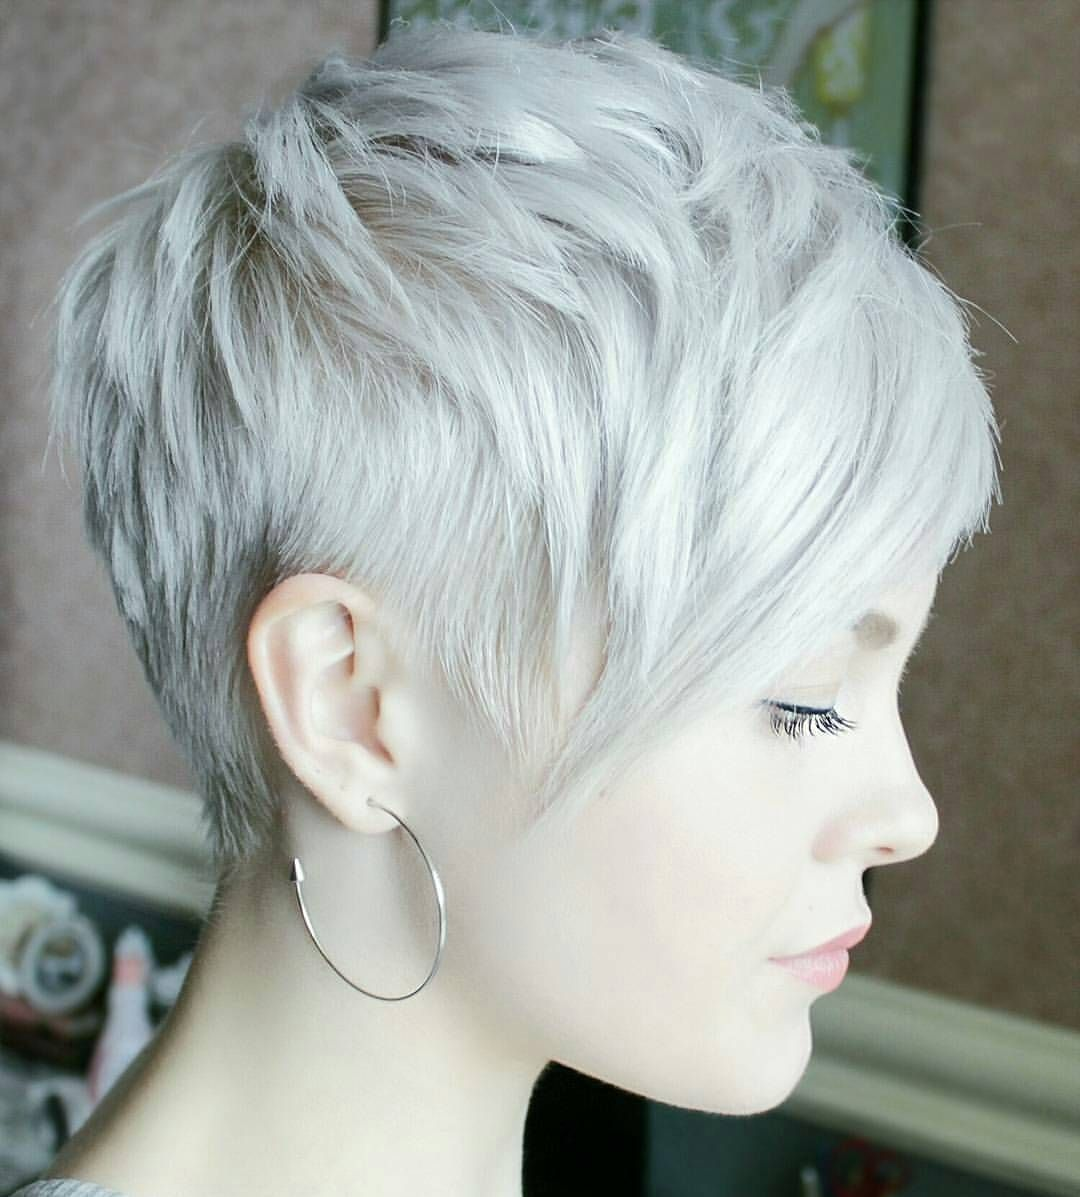 Pixie Hairstyles Endearing 50 Trendsetting Short And Long Pixie Haircut Styles — Cutest Of Them